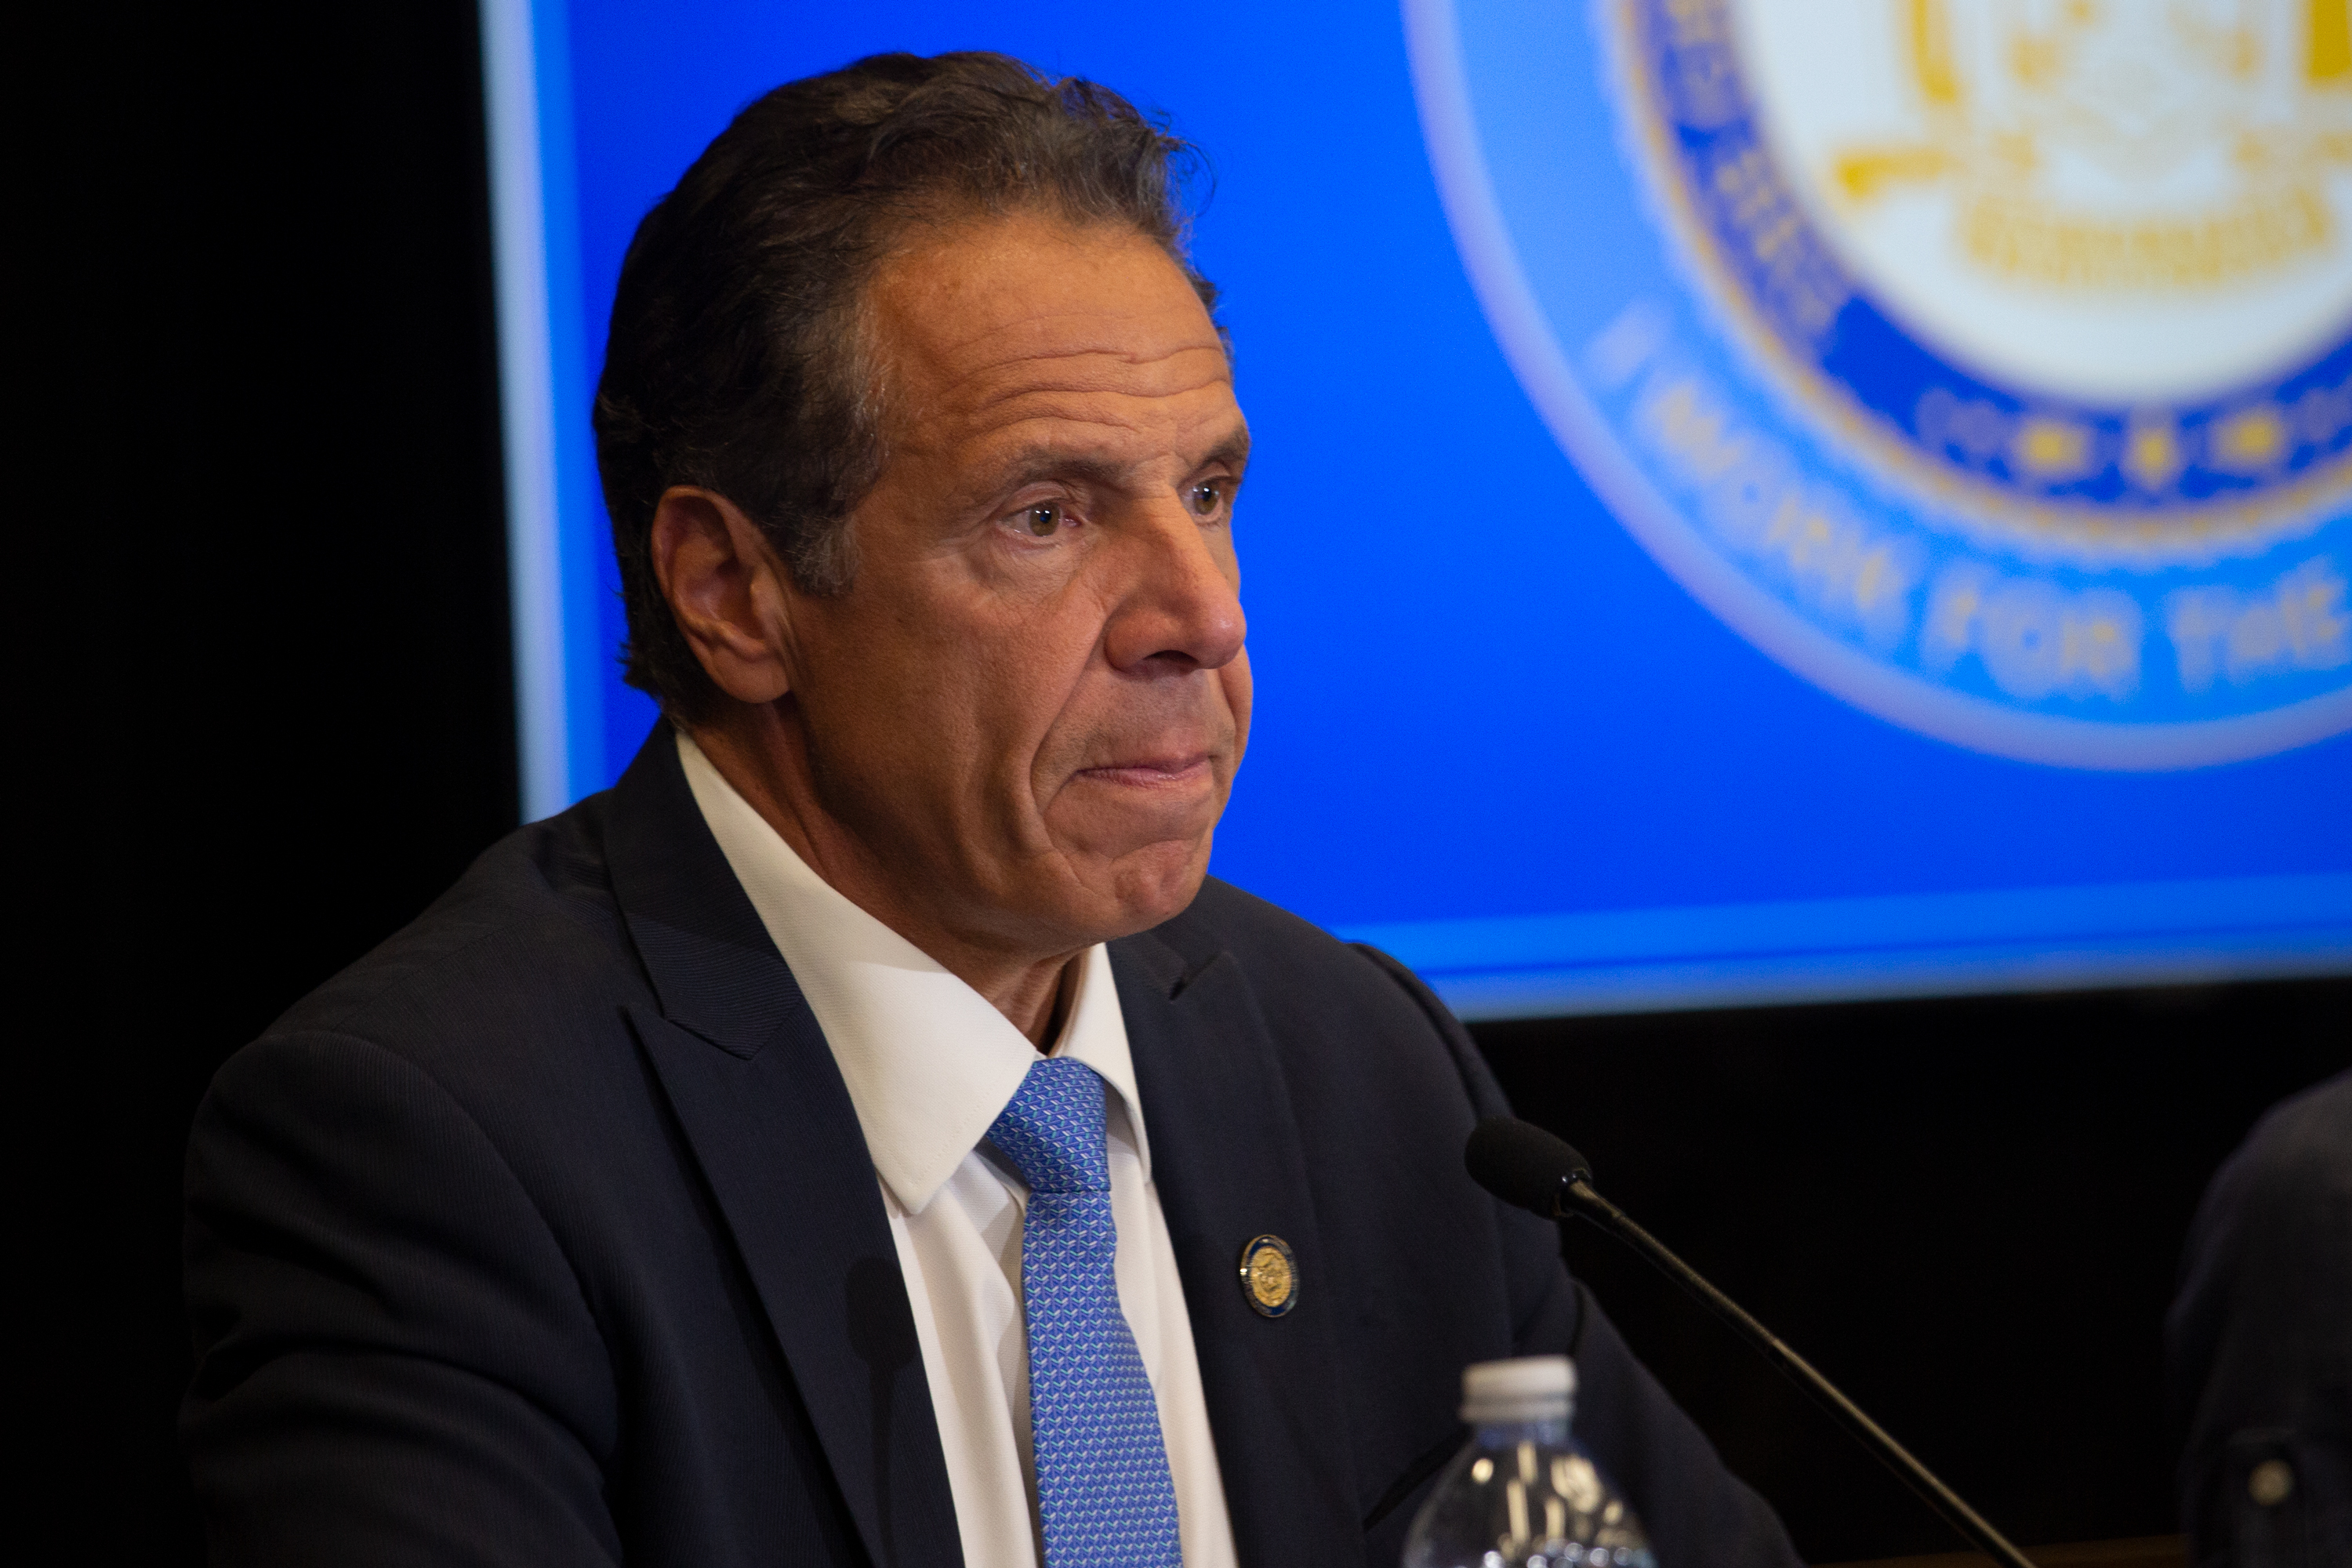 Gov. Andrew Cuomo speaks about increasing vaccination rates during a press conference at Yankee Stadium on Monday, July 26, 2021.